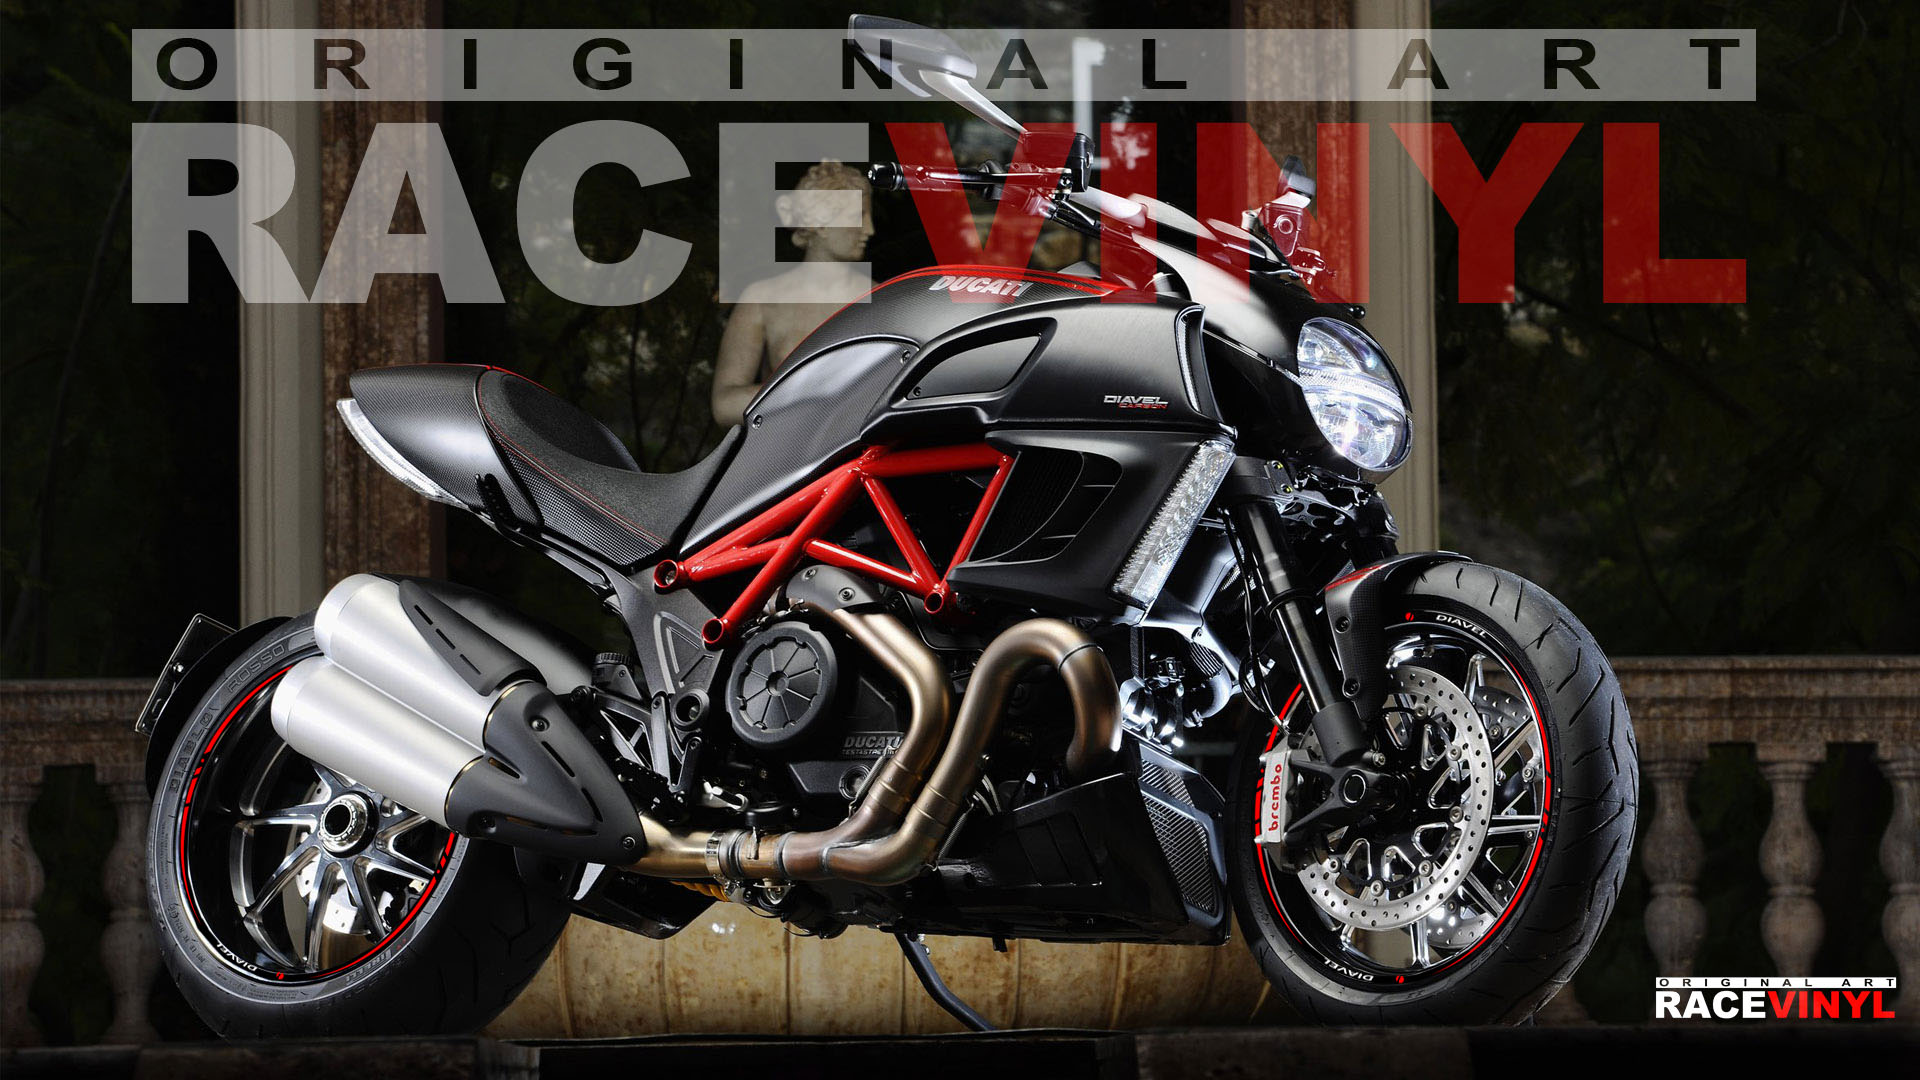 Ducati Diavel Racevinyl Europe Vinyl Sticker Kits For Rims - Bridgestone custom stickers motorcycle